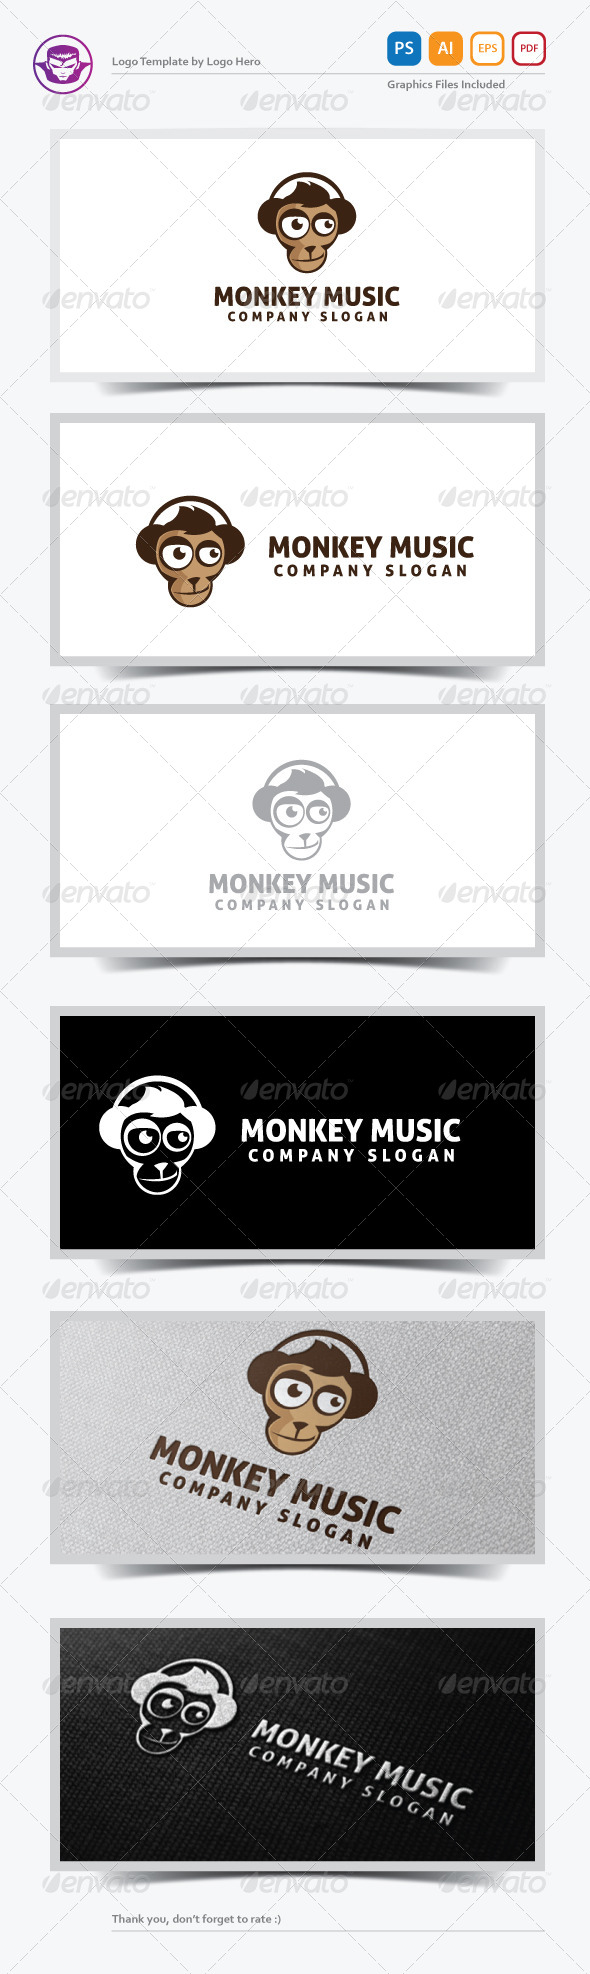 GraphicRiver Monkey Music Logo Template 5325919